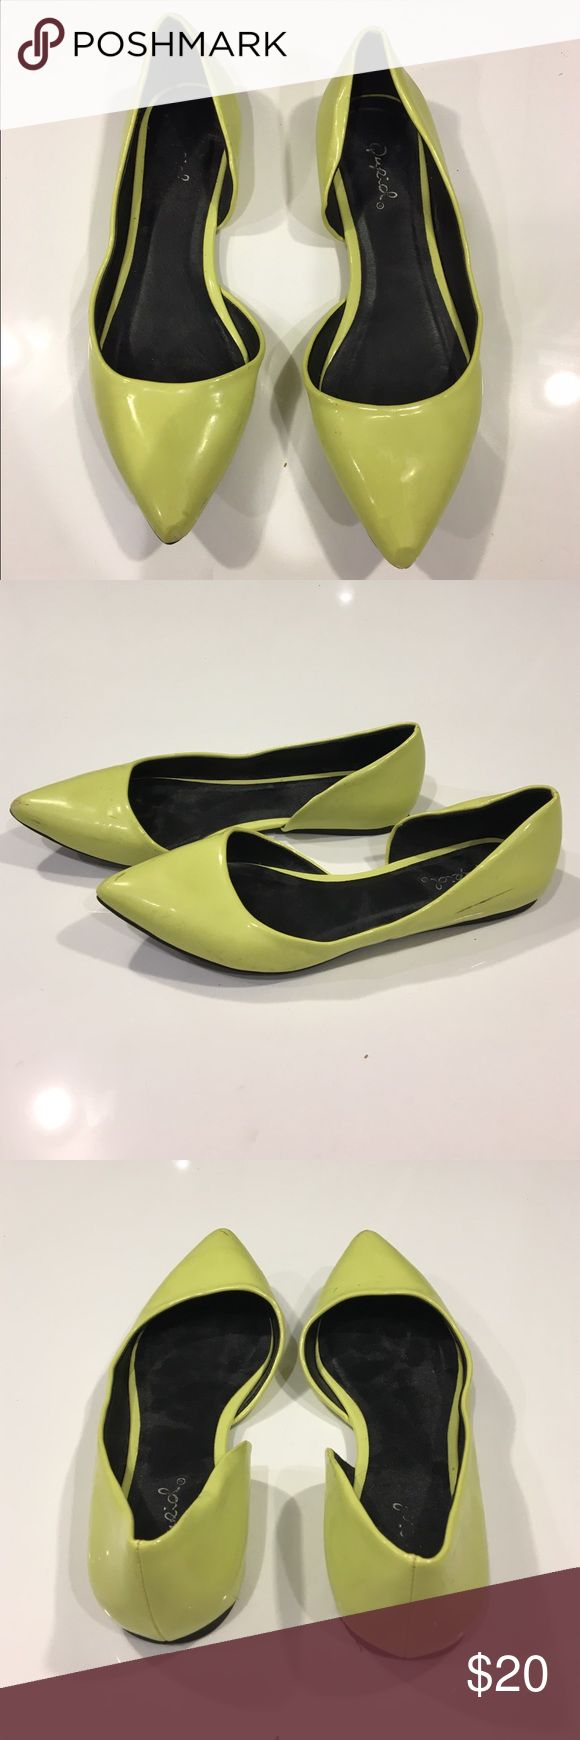 Neon Flats Neon yellow flats! Shiny finish with soft black interior. Size 6. Shoes Flats & Loafers